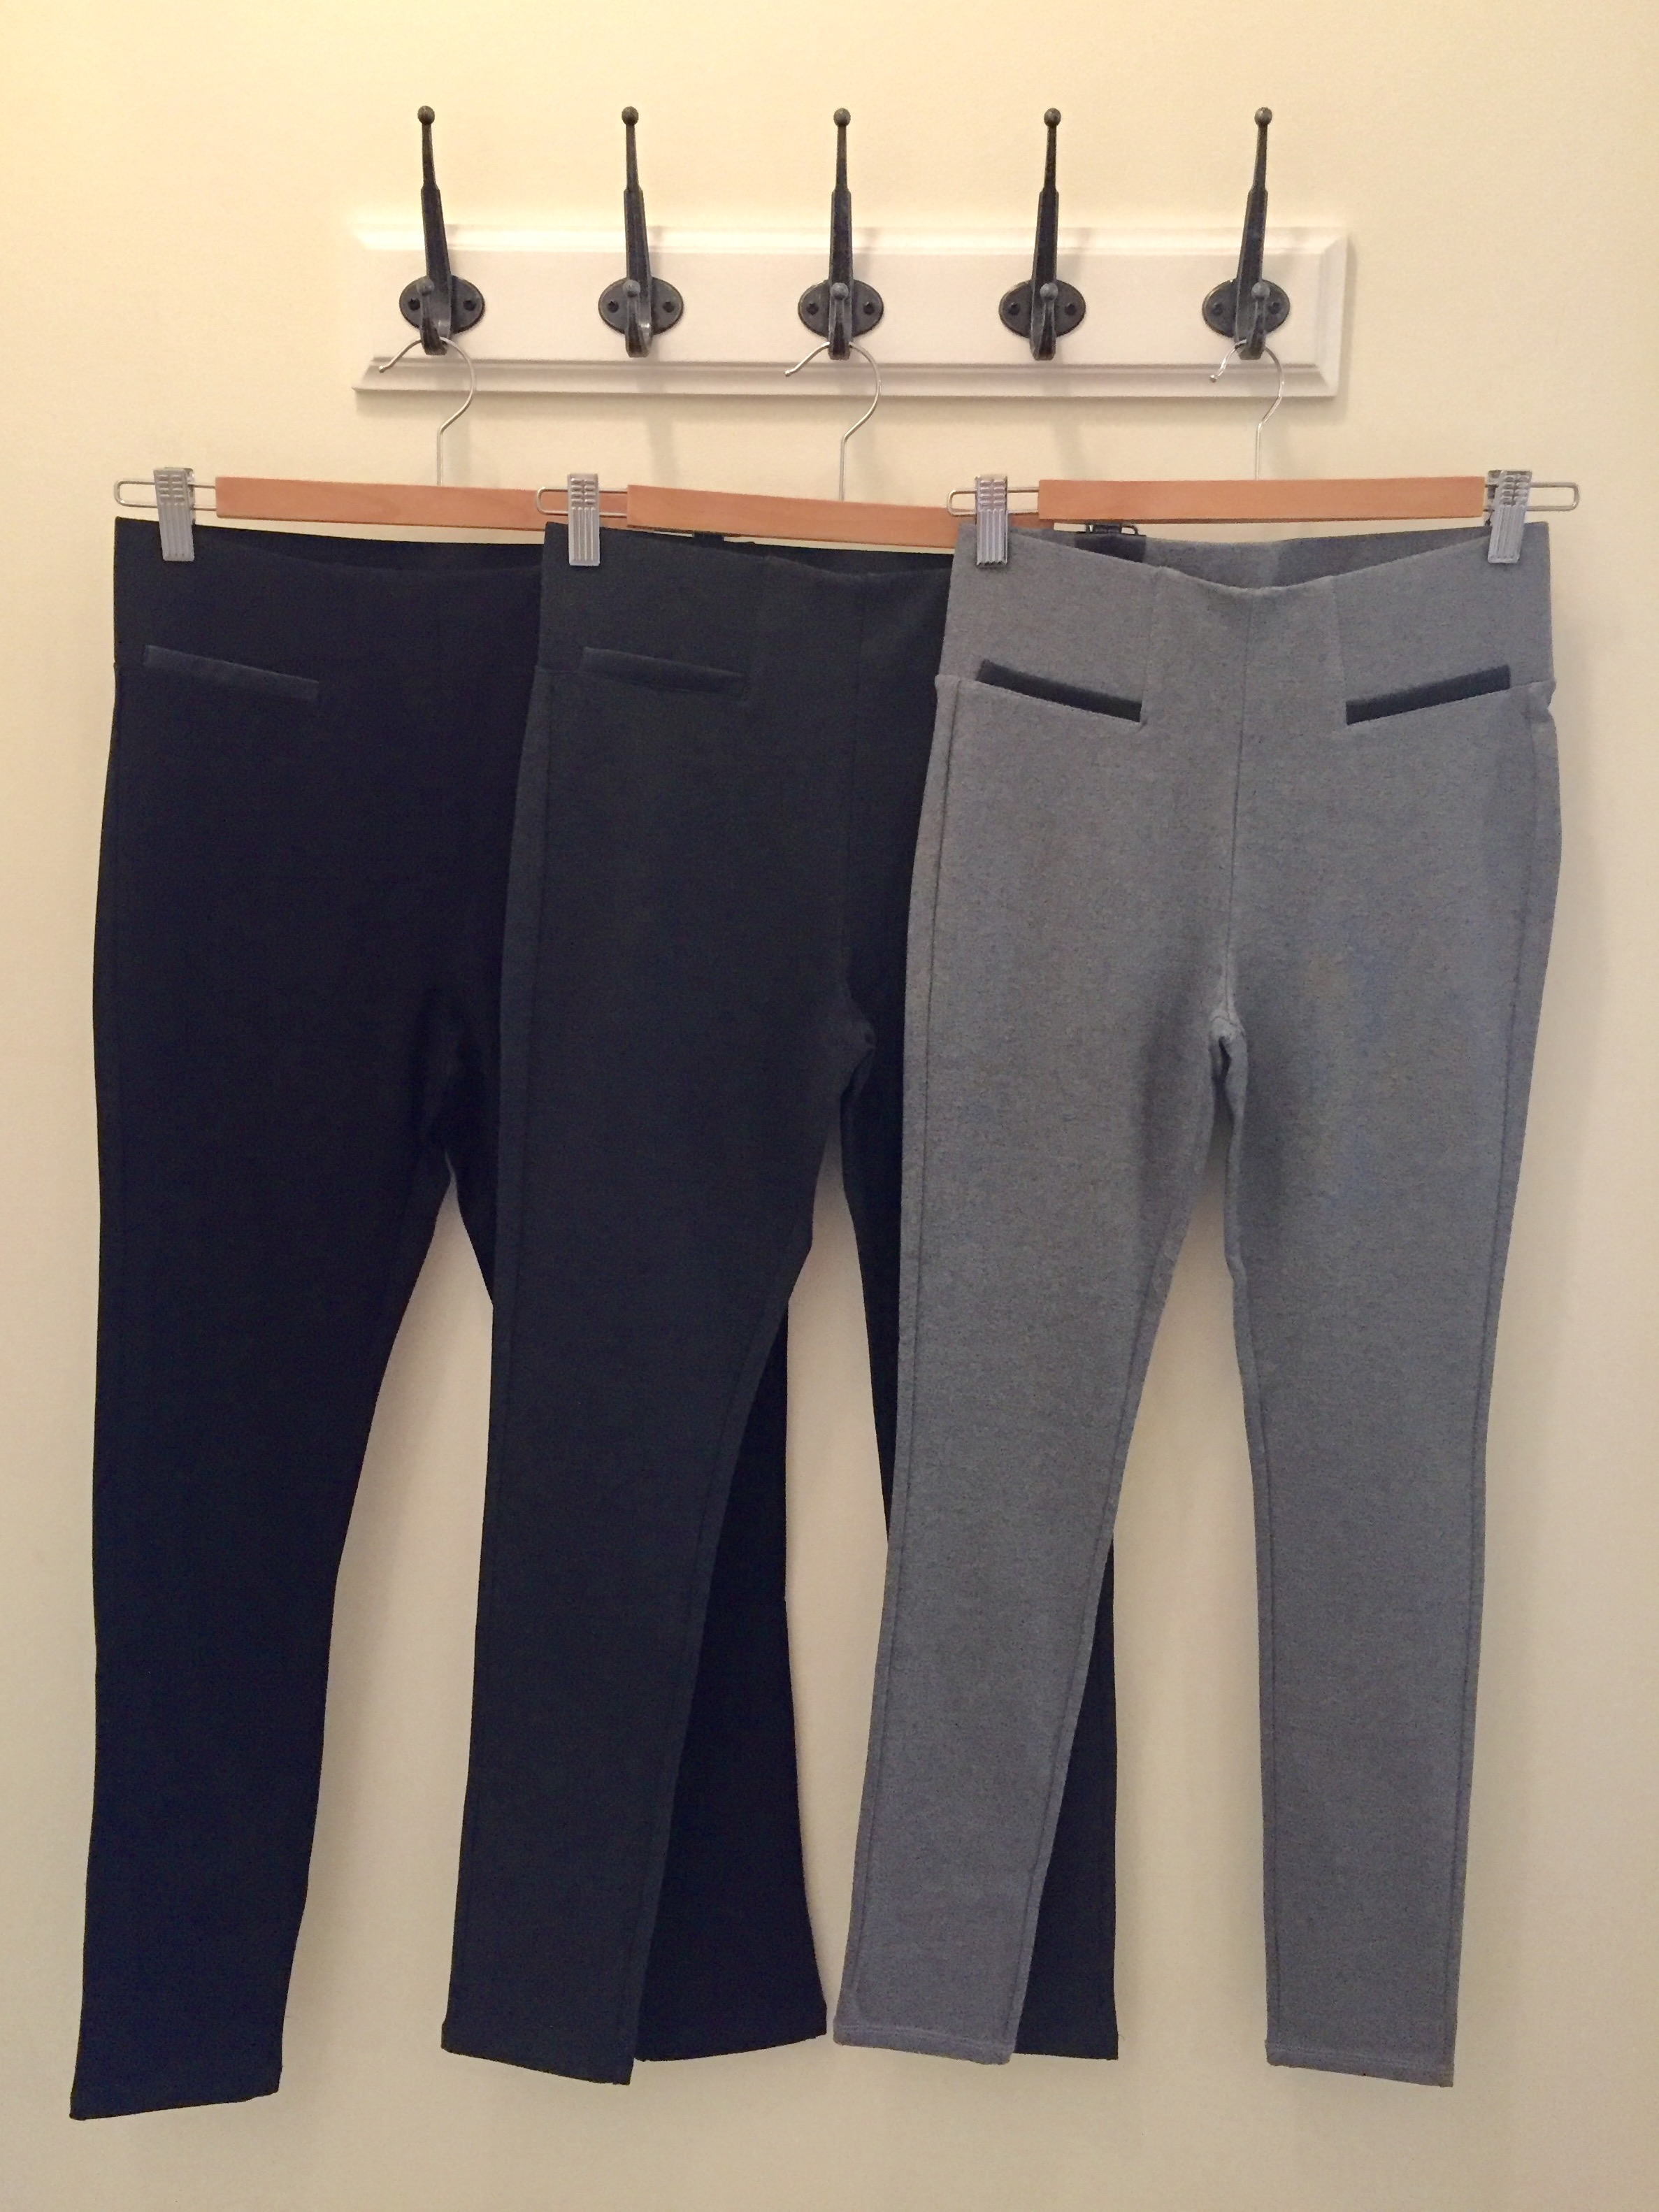 Ponte Pants (Black, Charcoal, Grey $28)